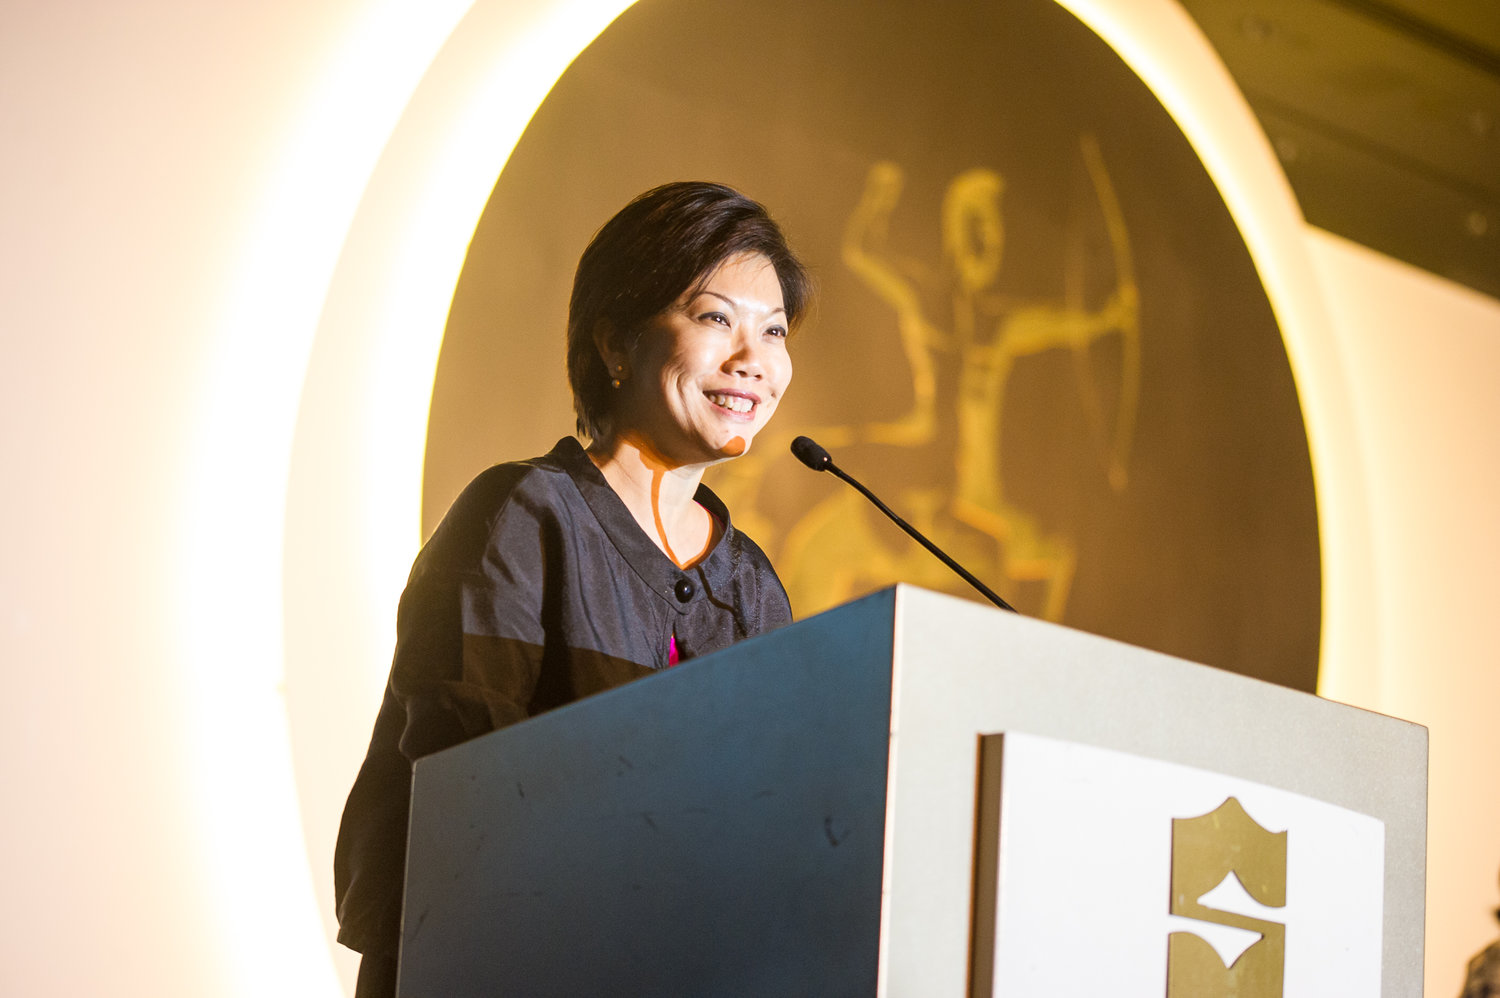 Ms. Irene Ng, VP of Marketing, delivering acceptance speech at the Awards Ceremony